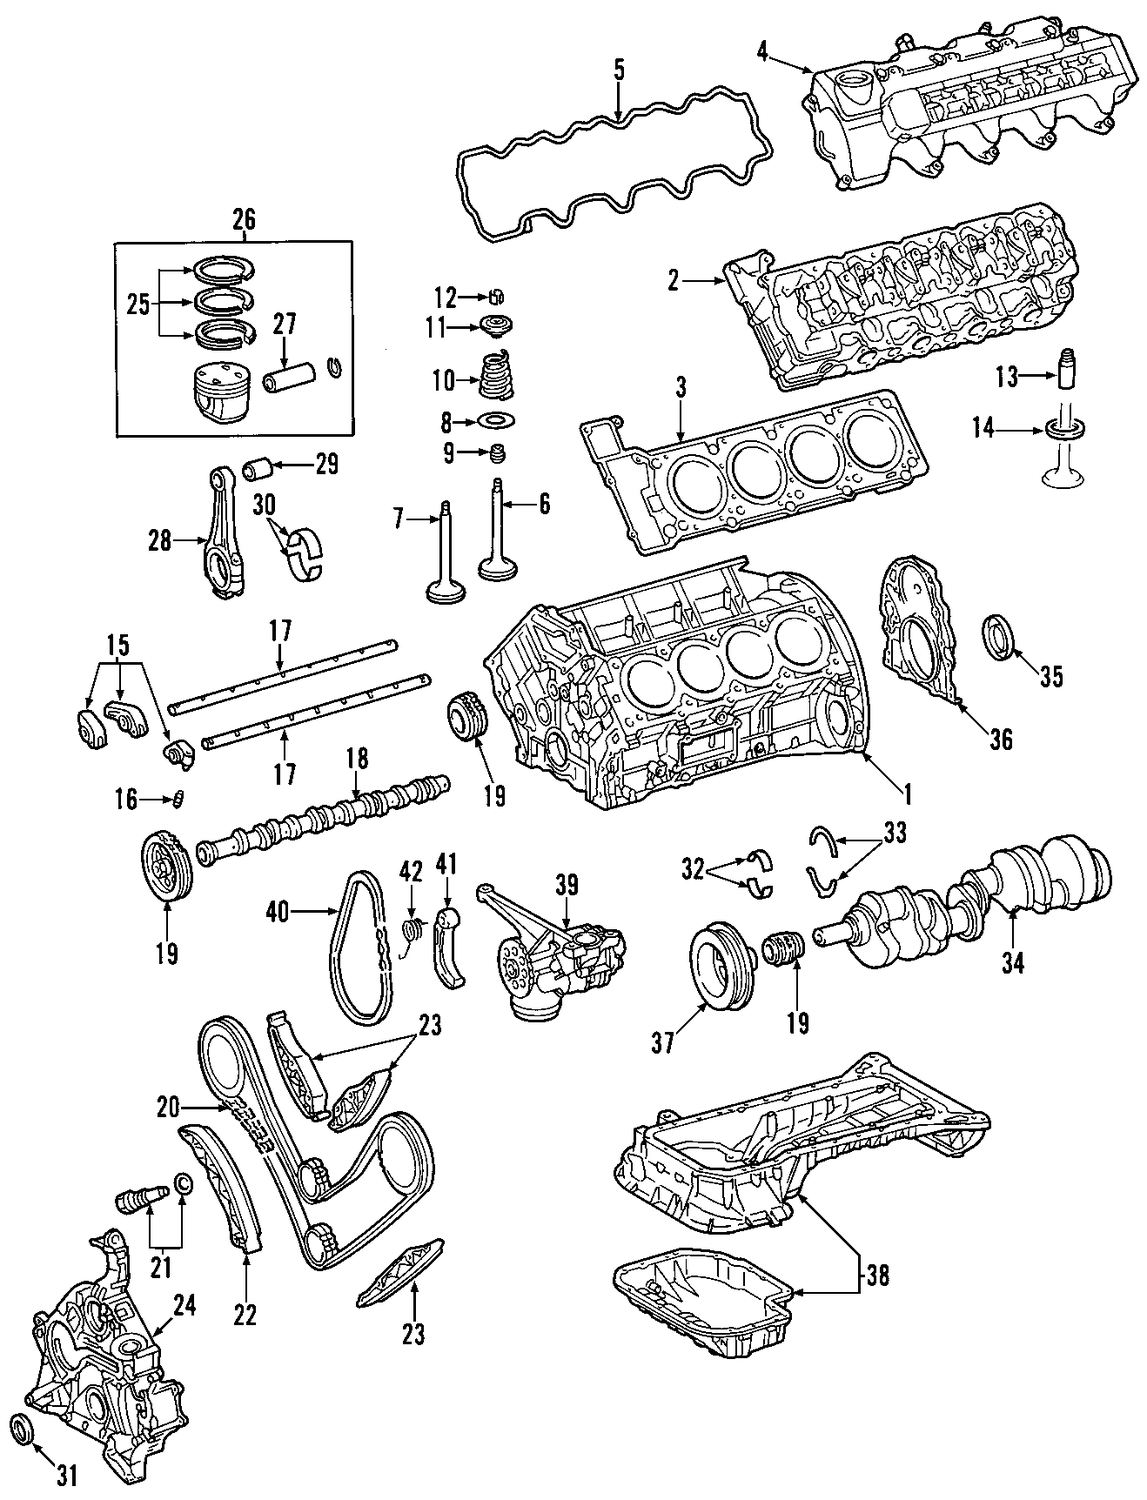 1986 Mercedes Benz 560 Engine Diagram Electrical Schematics 2001 E320 Fuse Browse A Sub Category To Buy Parts From Mopardirectparts Com